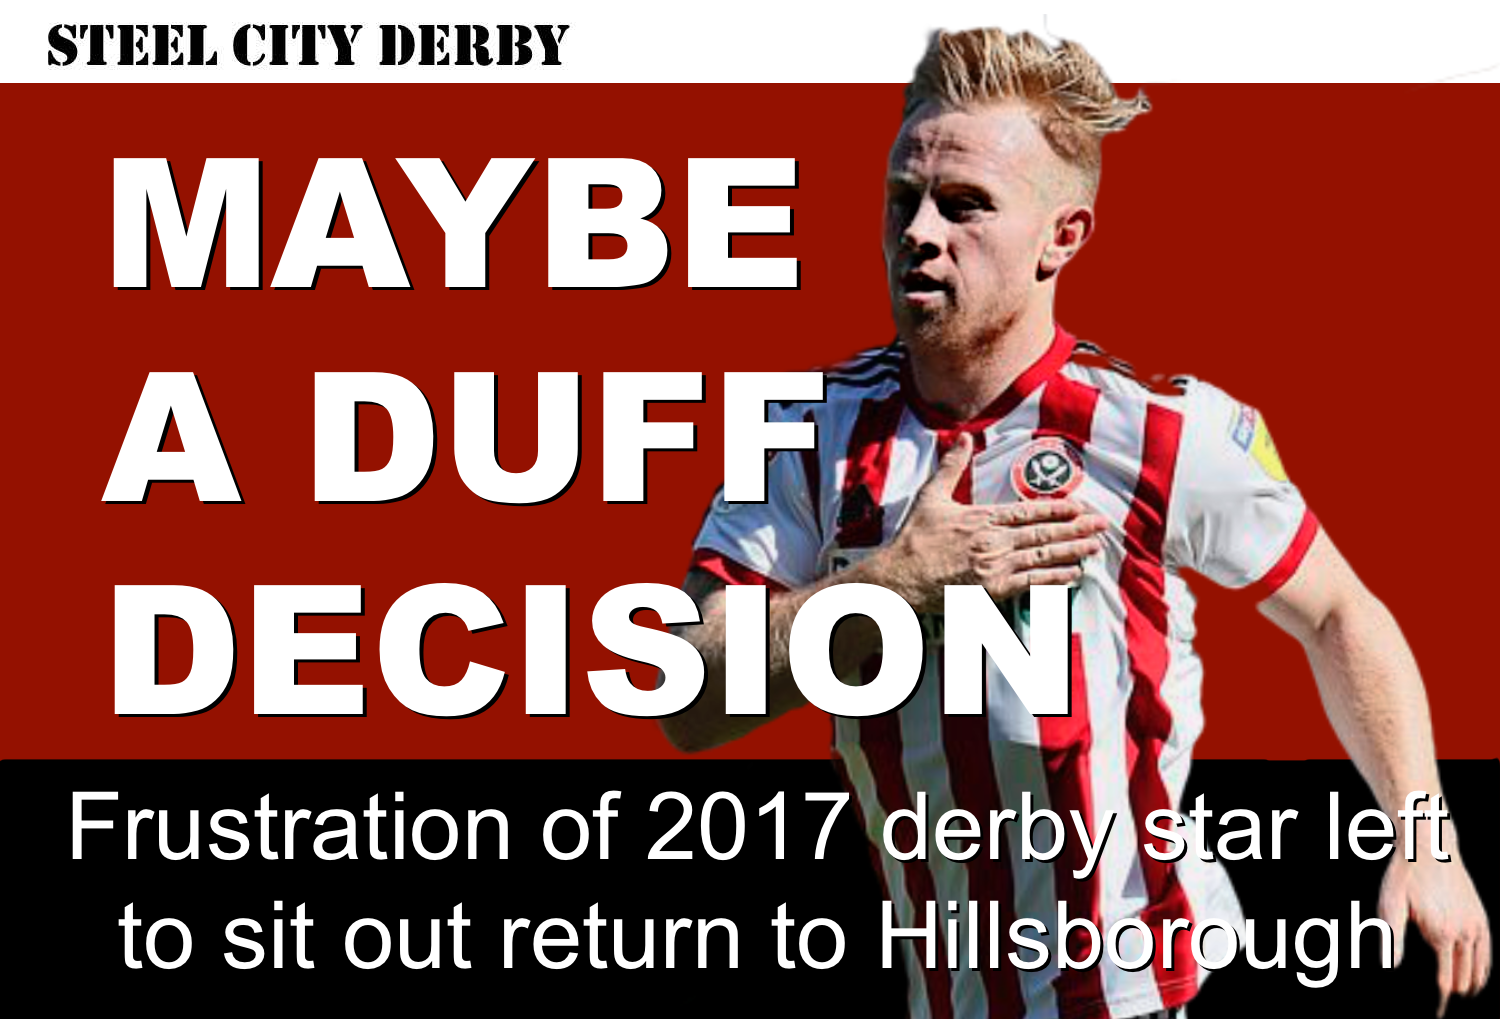 Did Sheffield United make wrong decision in Sheffield derby by leaving hero of Hillsborough 2017 Mark Duffy on the bench